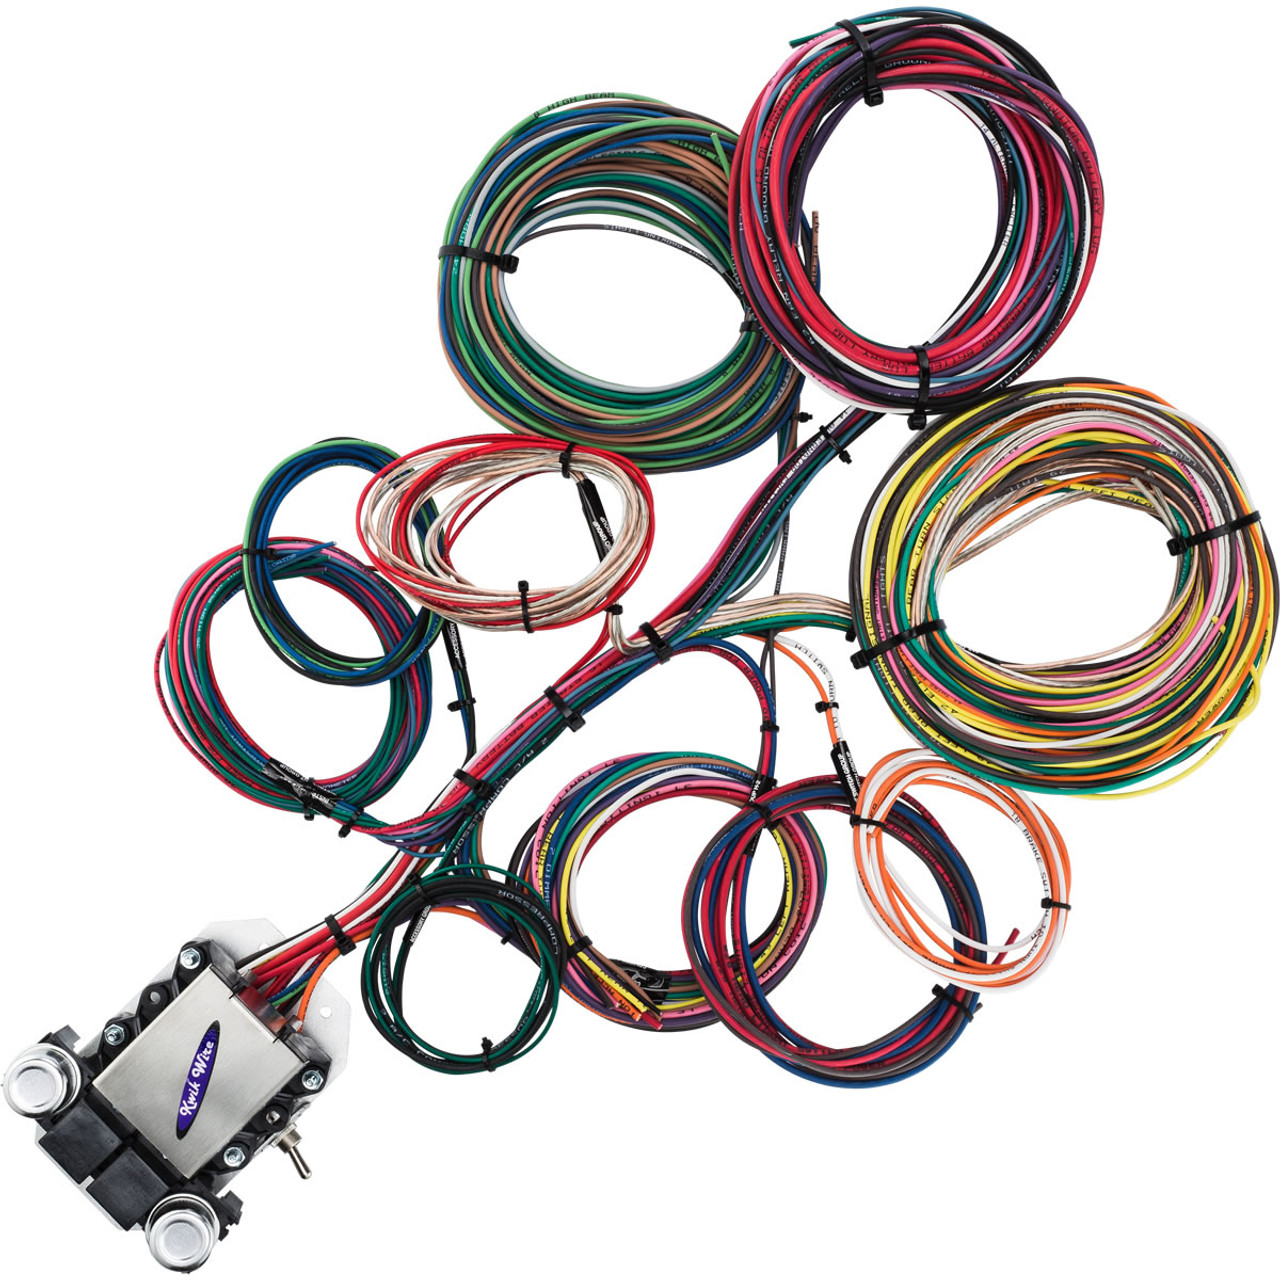 14 circuit ford wire harness kwikwire com electrify your ride rh kwikwire com ford wiring harness diagram ford wiring harness connectors